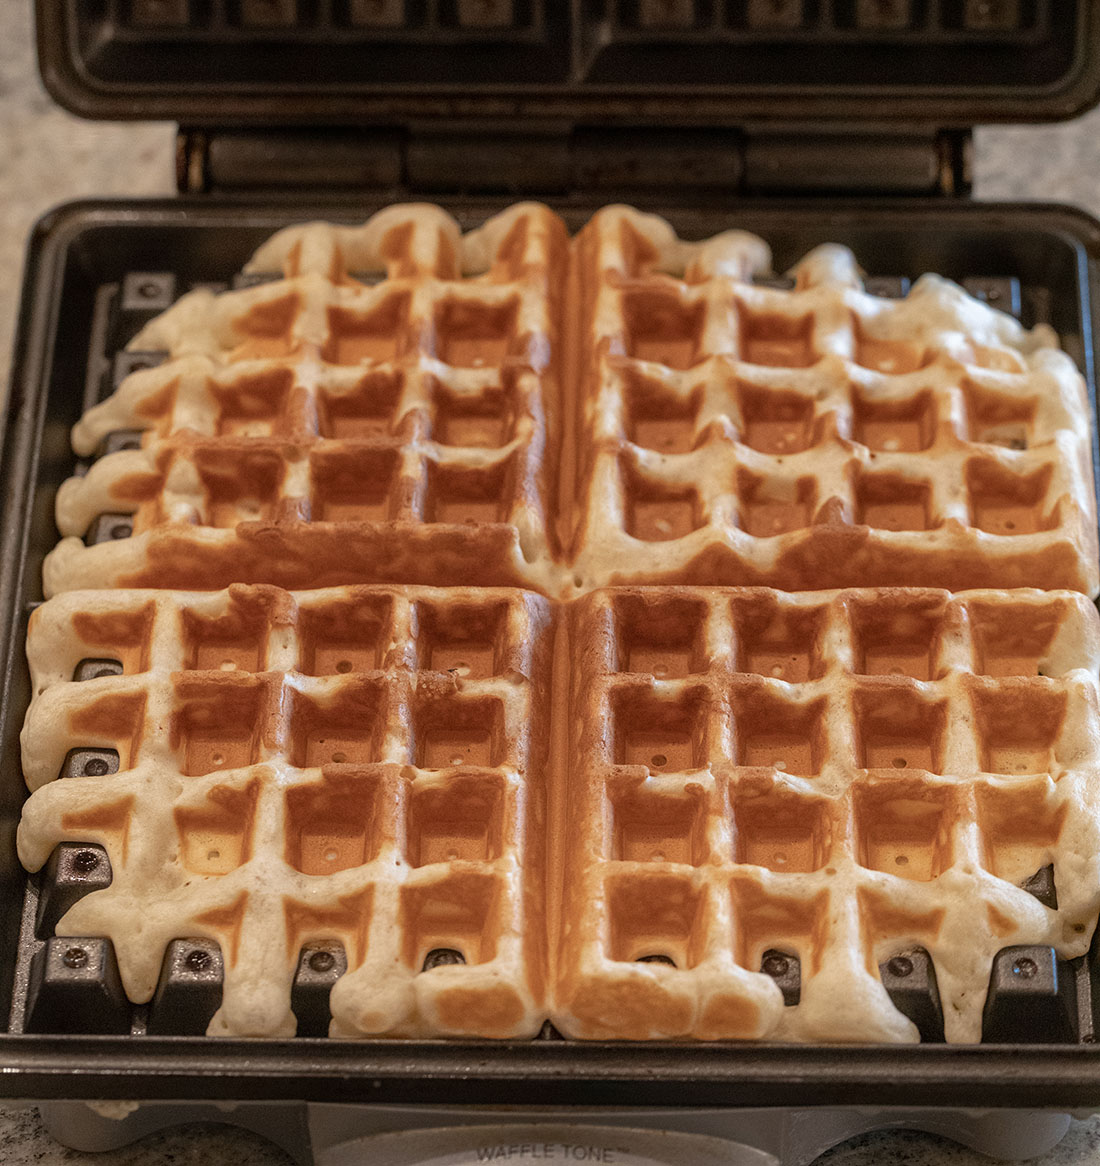 Waffles cooked golden brown in an open waffle maker.